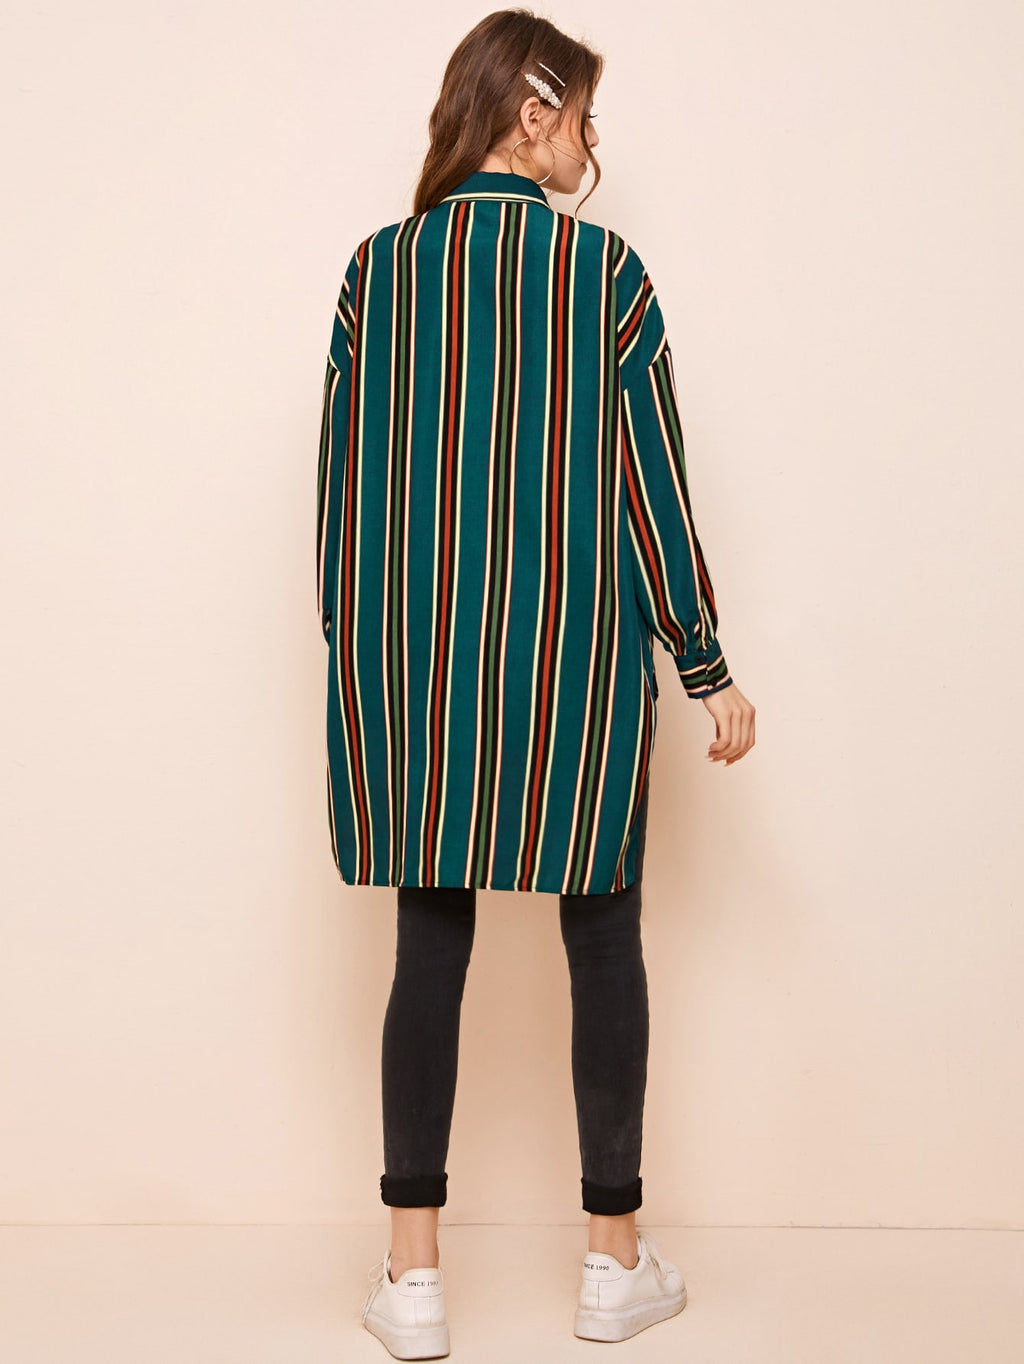 Drop Shoulder High-low Hem Striped Patchwork Blouse